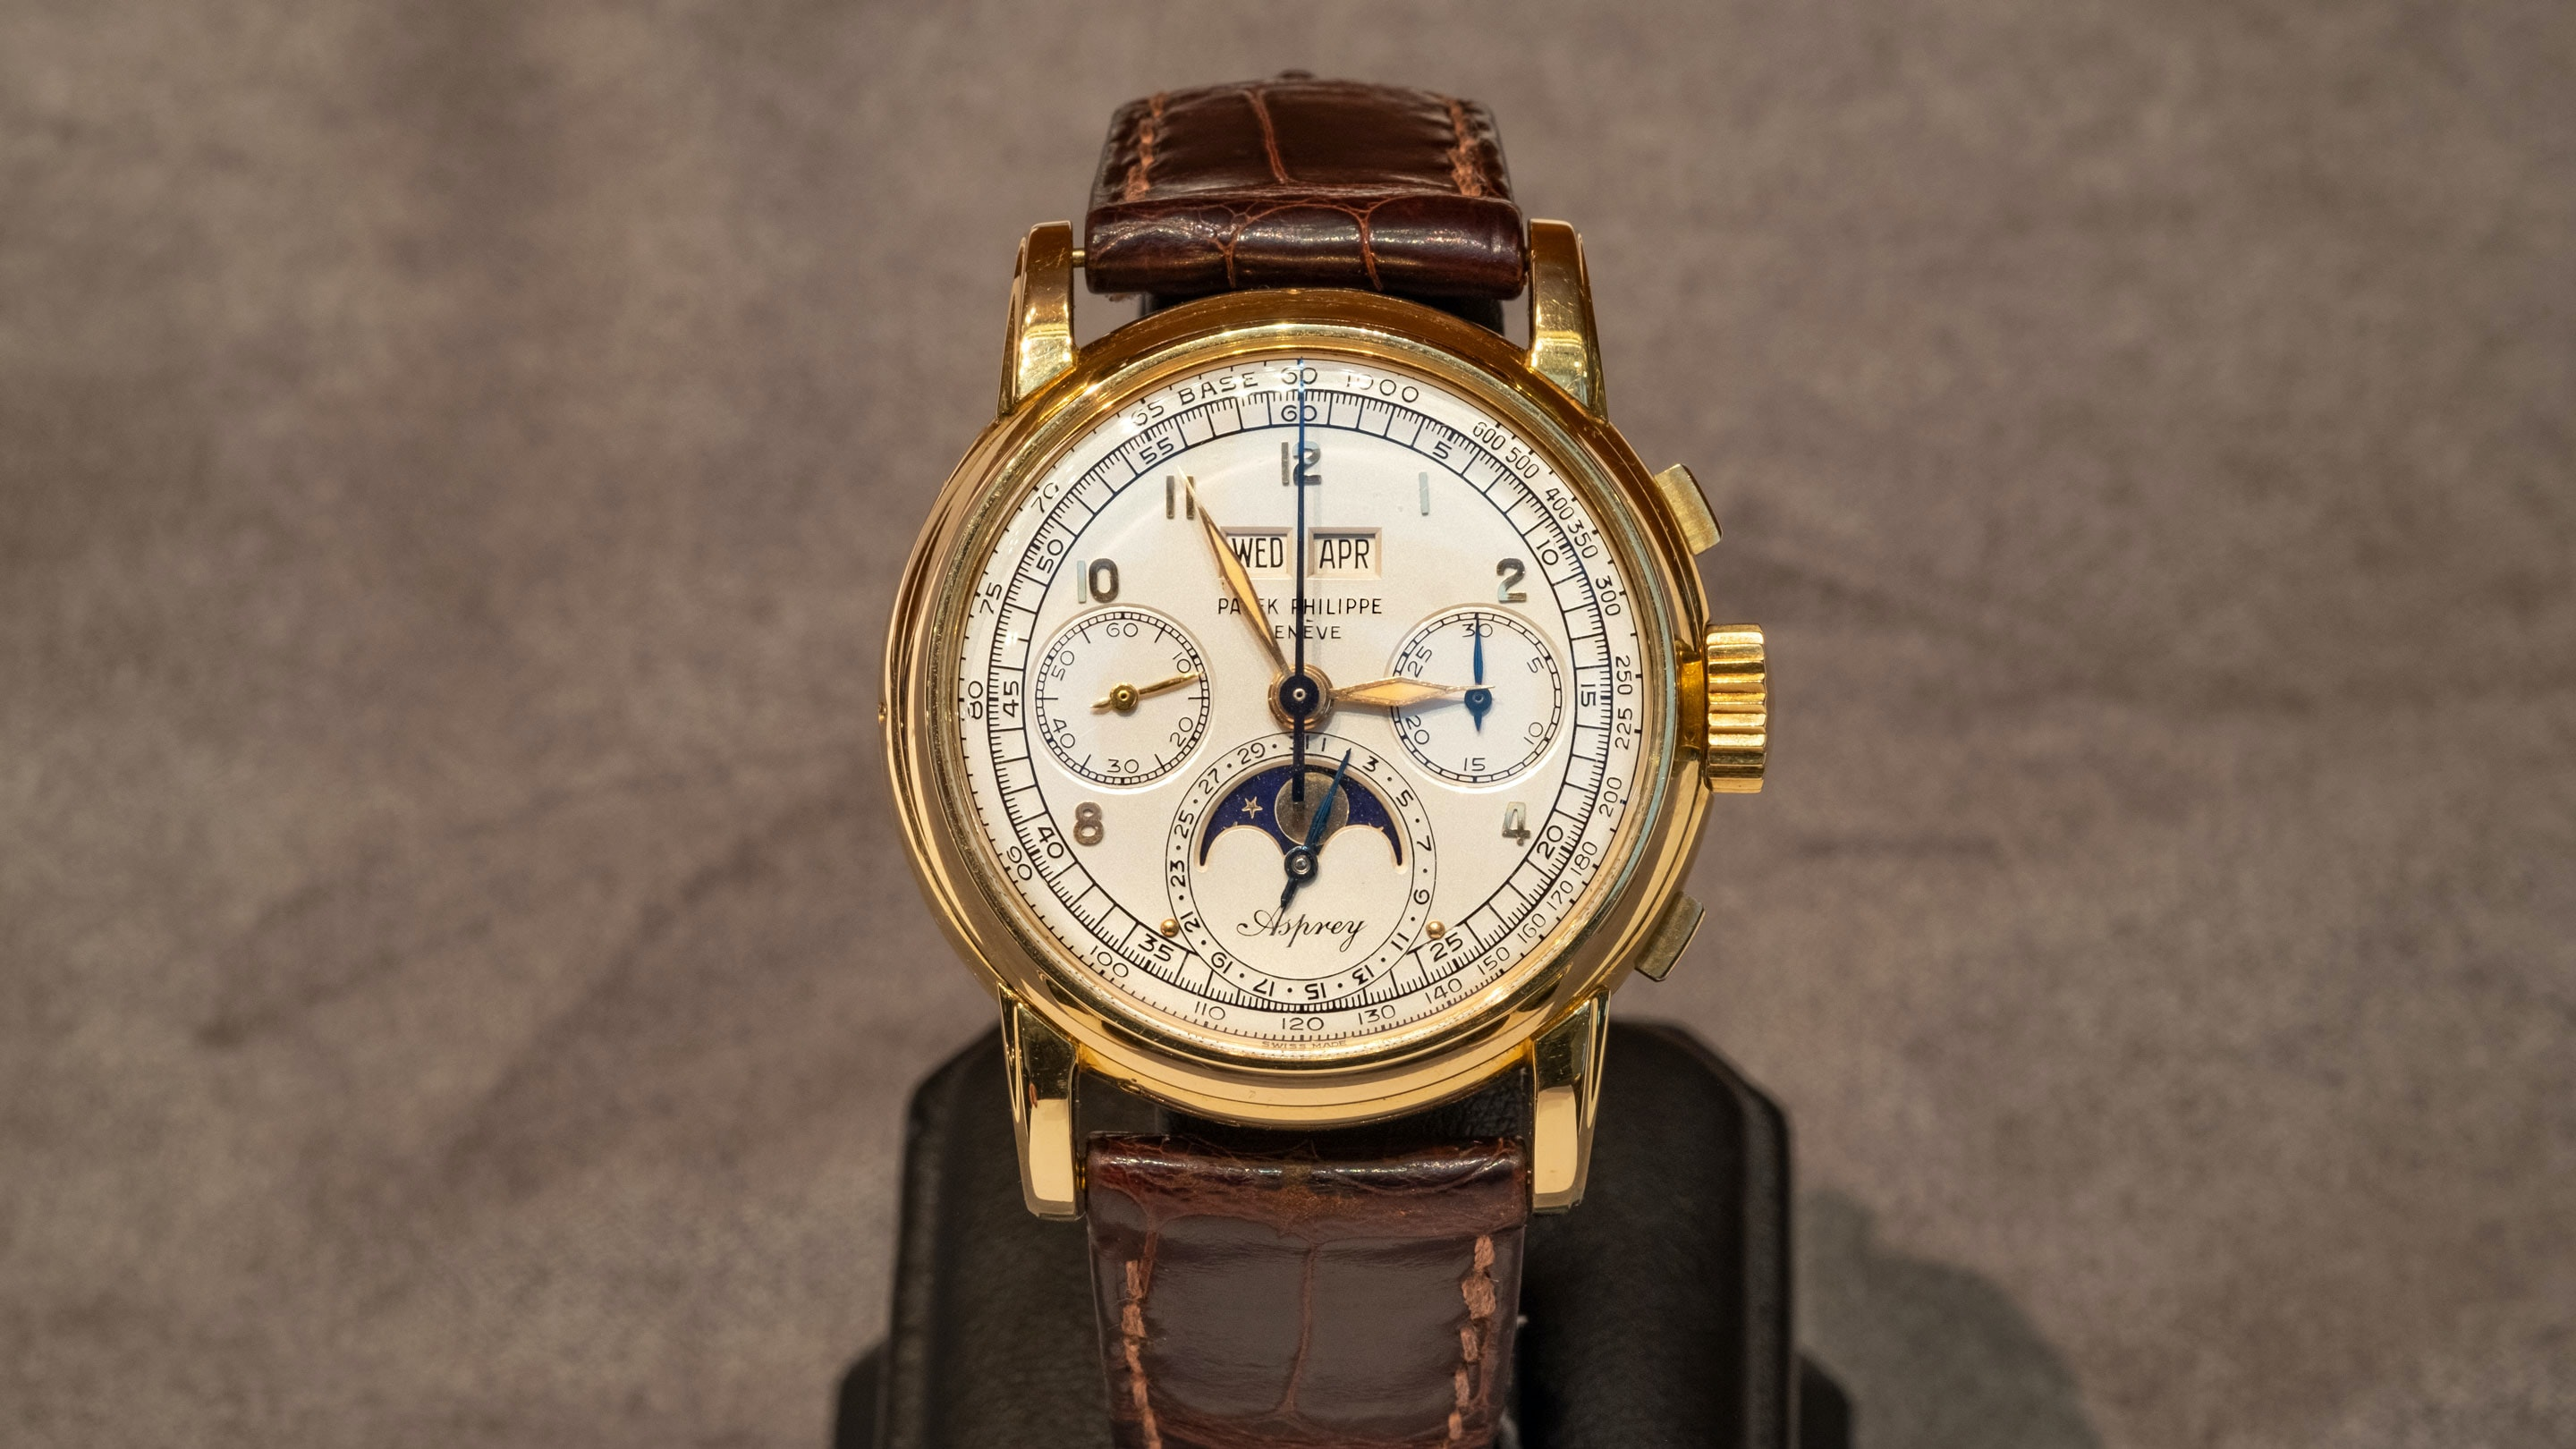 Breaking News: The Only Known Asprey-Signed Patek Philippe Ref. 2499 Sells For $3.88 Million At Sotheby's, Setting A New World Record sothebys H